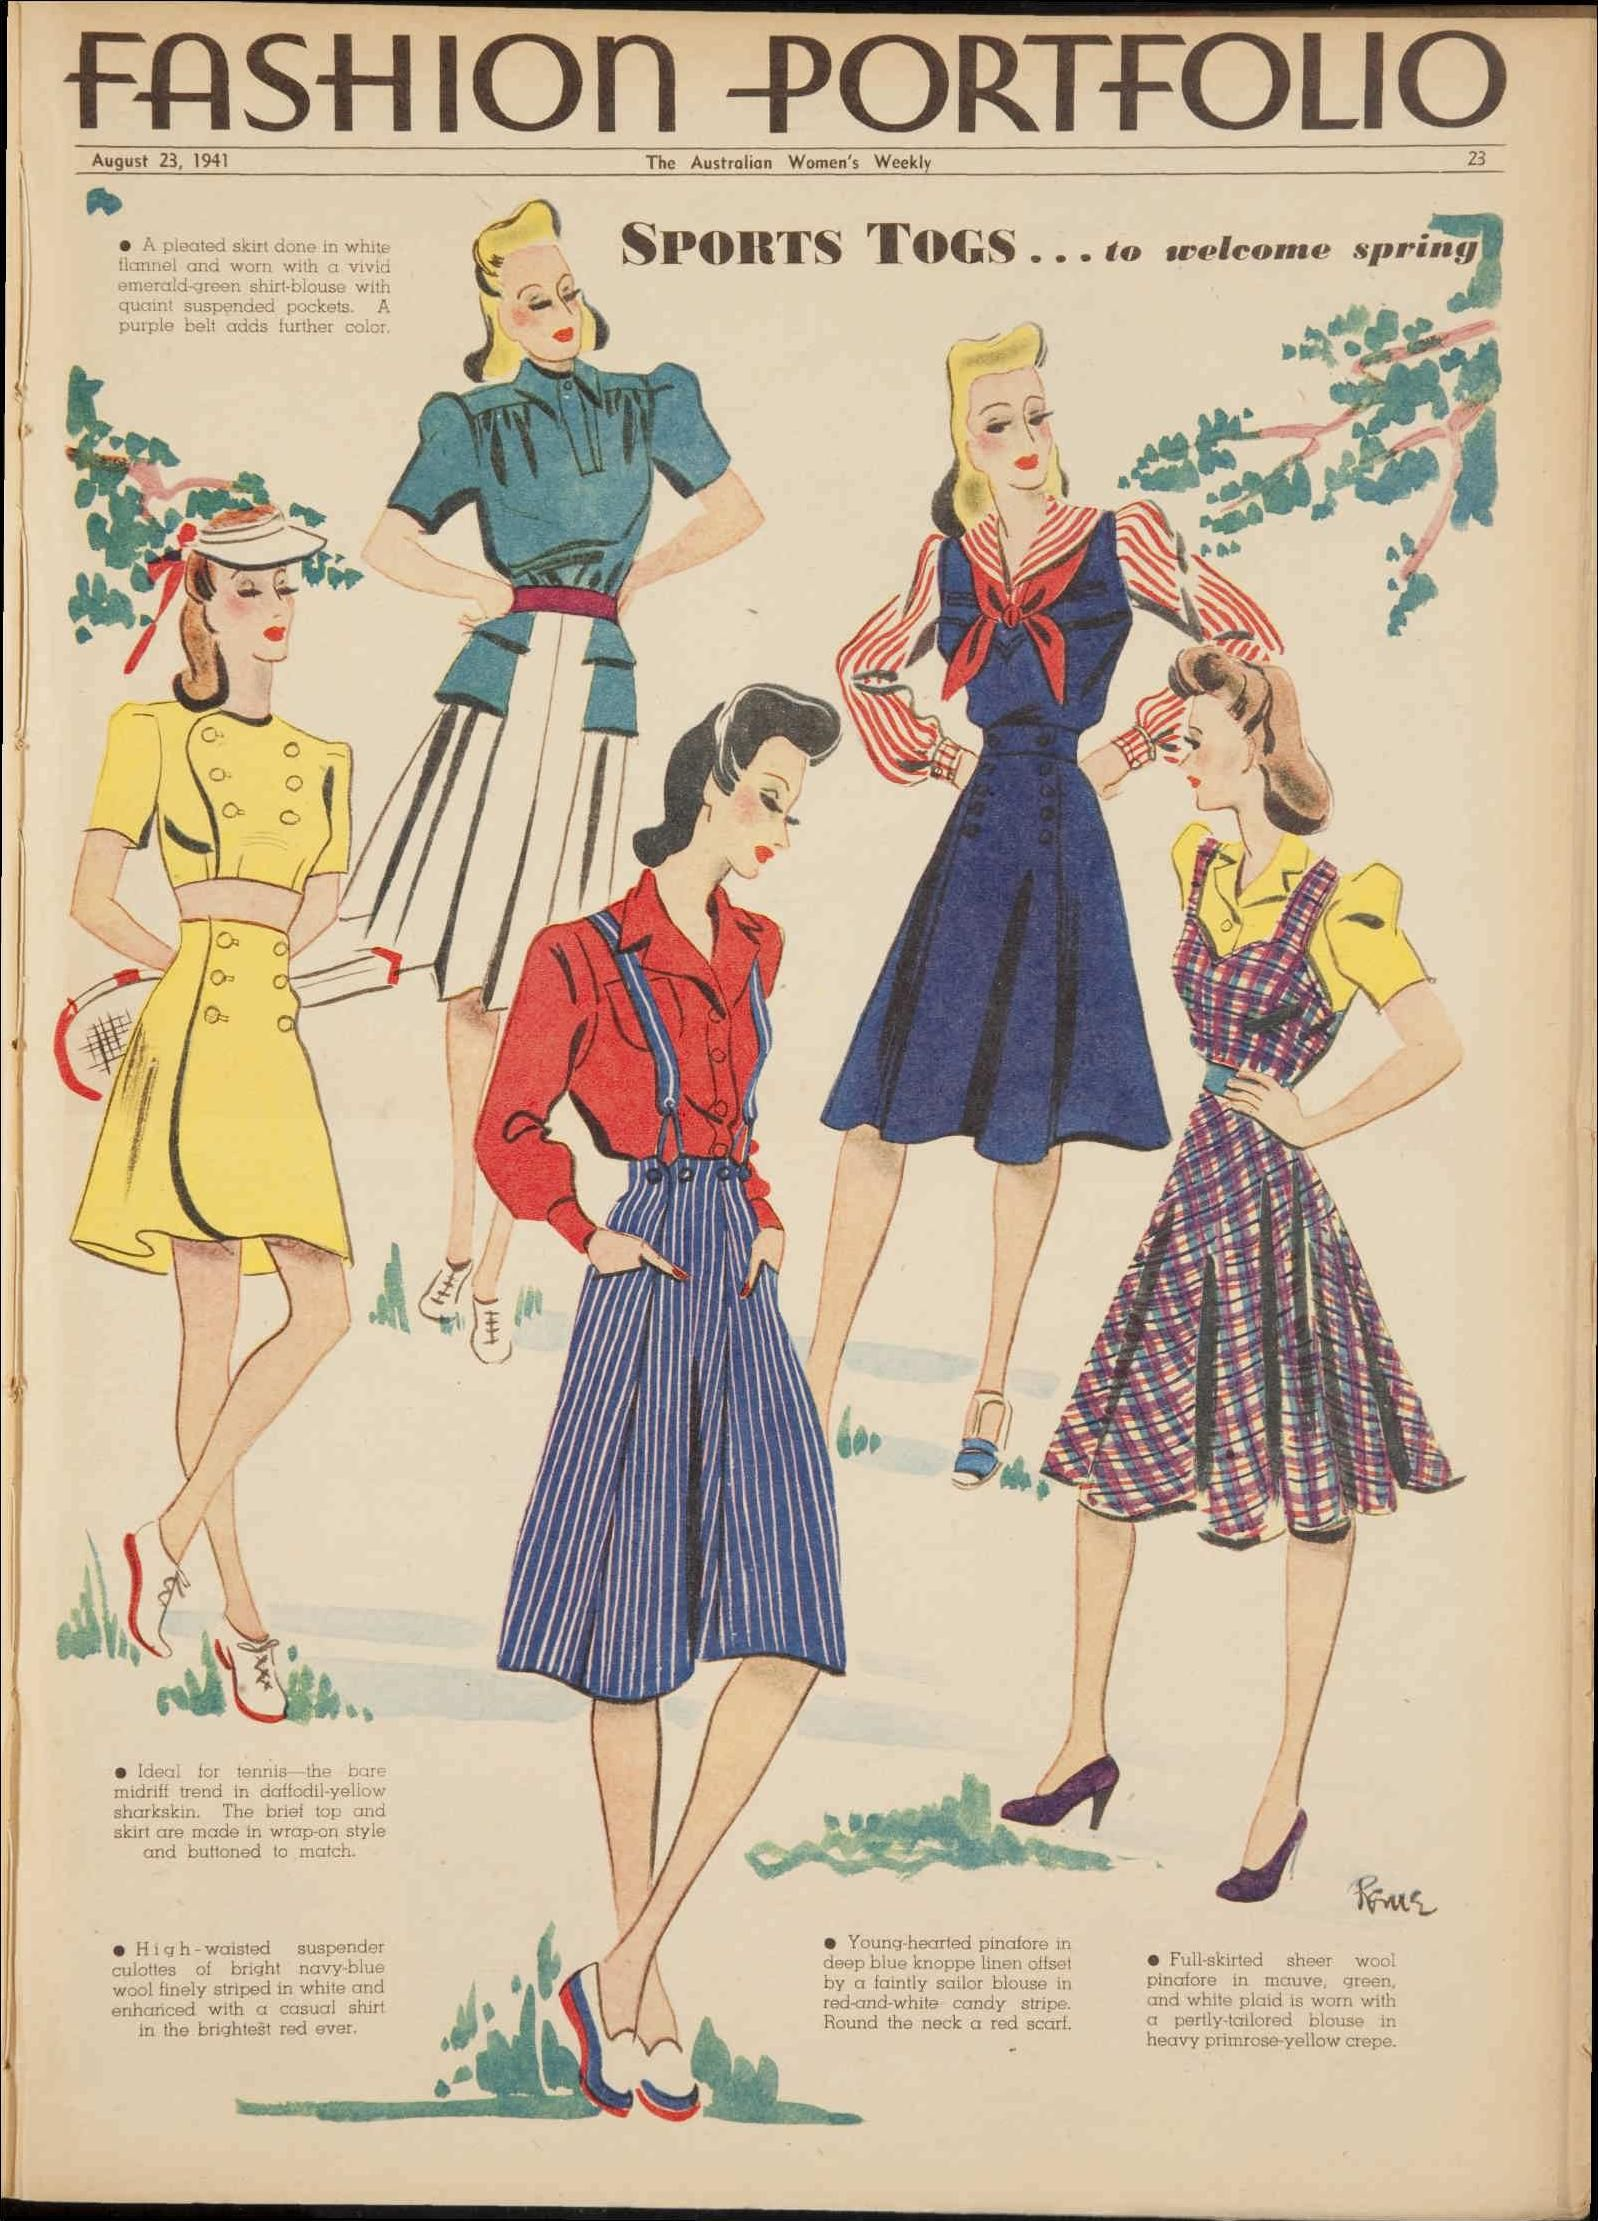 2e30df8db2c 40s vintage fashion style color illustration print ad summer sportswear  shorts bathing suit skirt top blouse War Era WWII Issue  23 Aug 1941 - The  ...